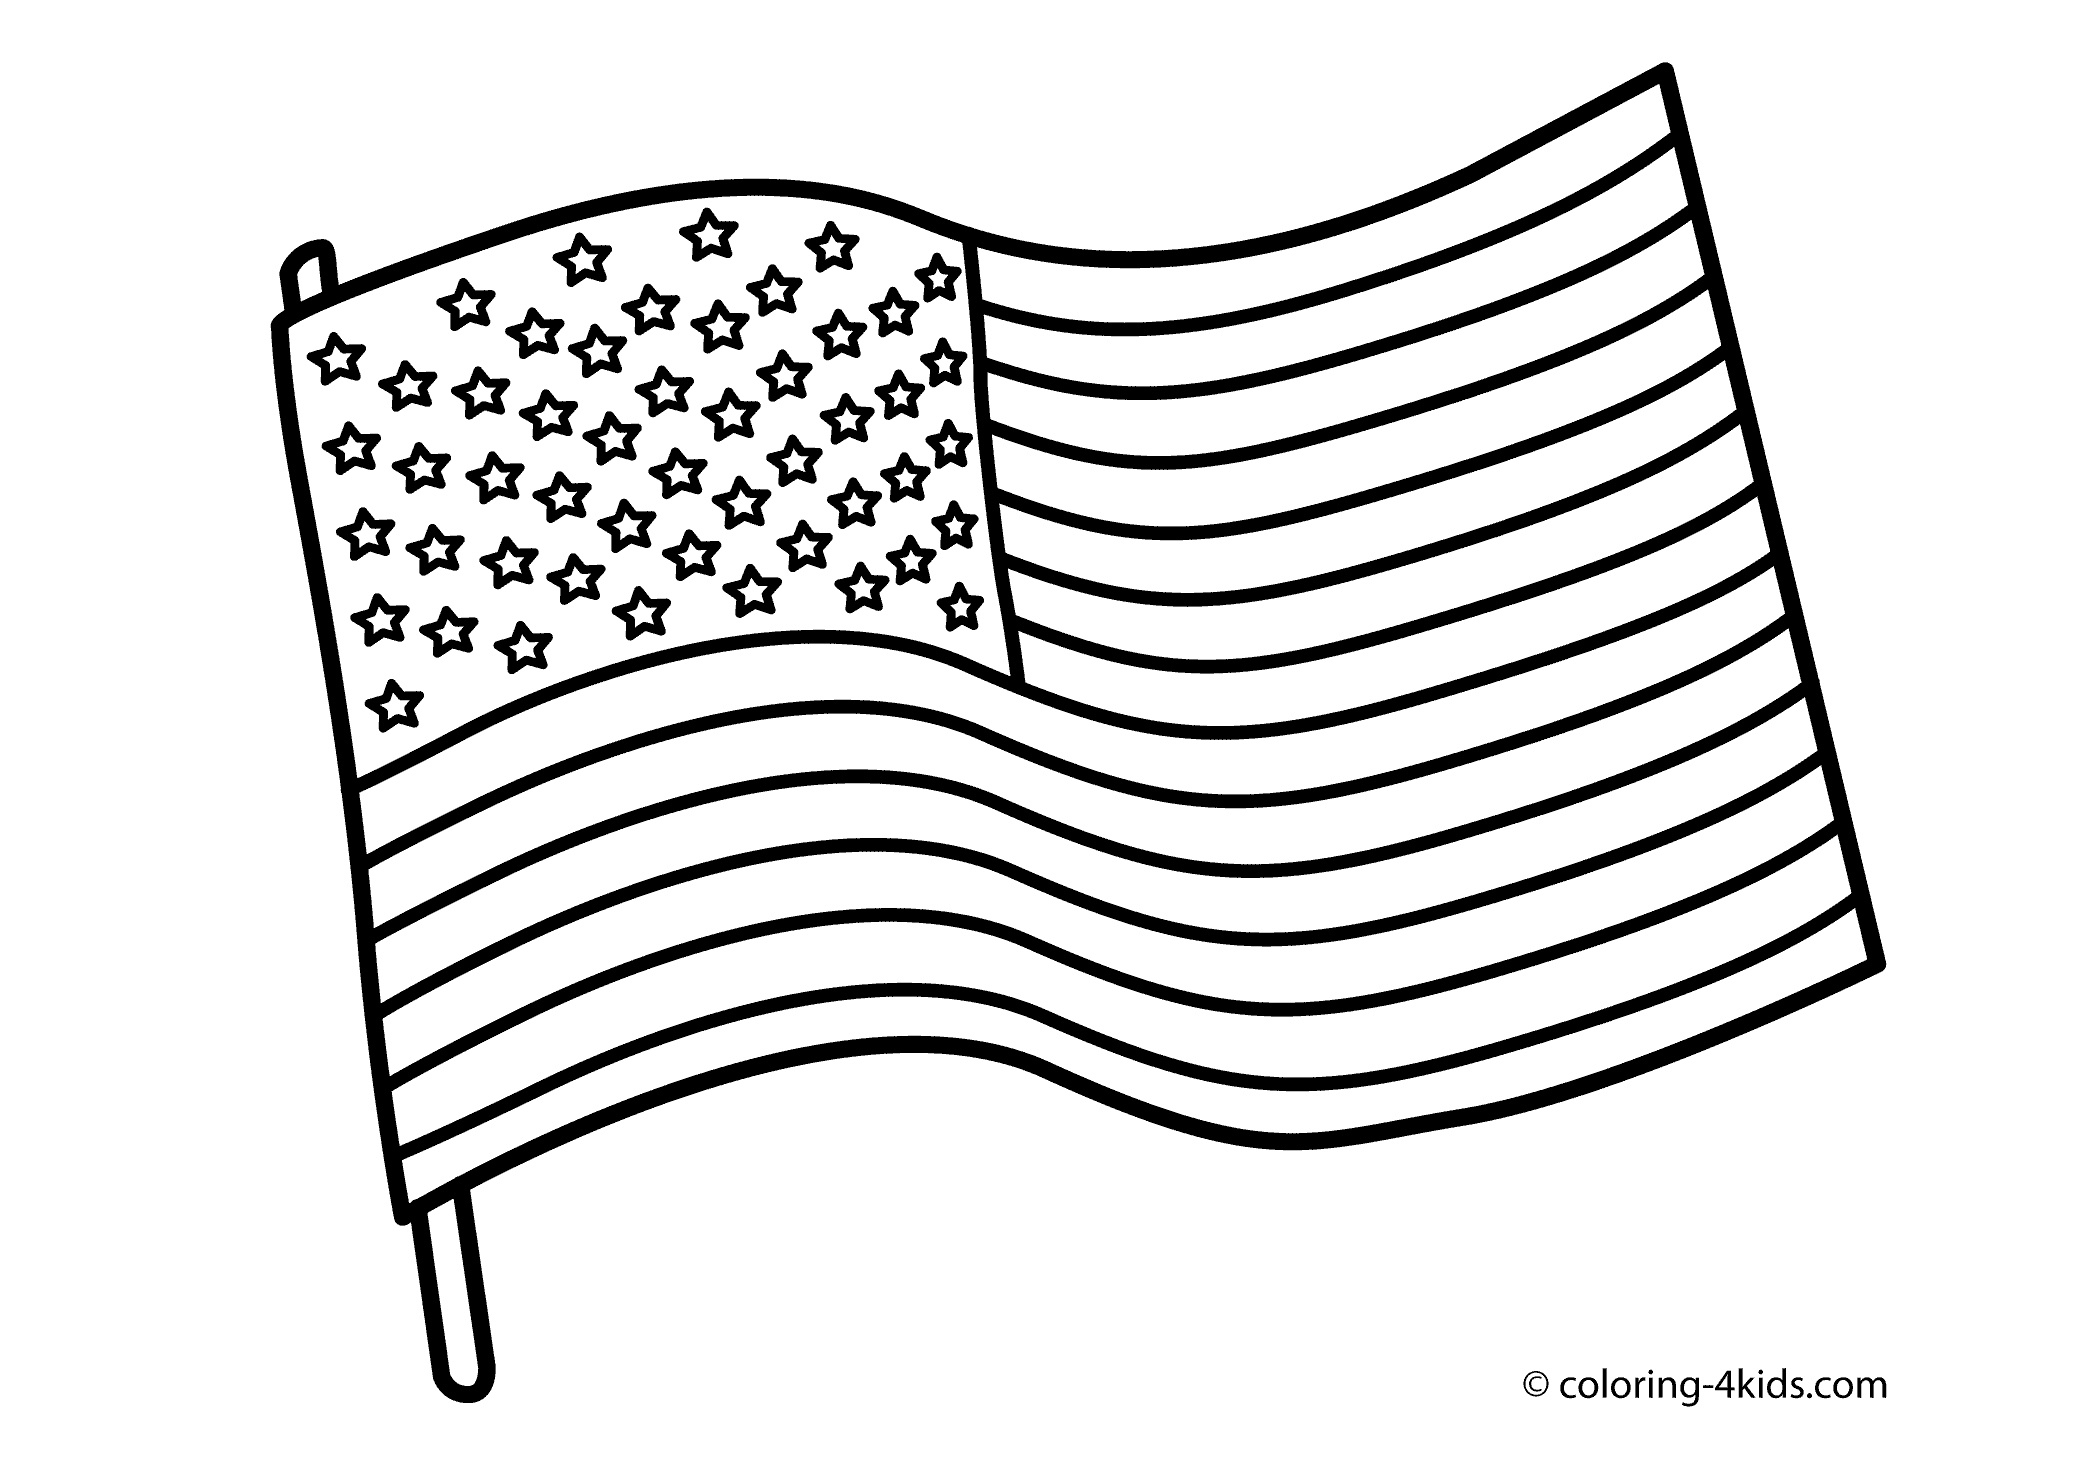 Coloring Ideas : Flag Coloring Pages To Download And Print For Free - Free Printable American Flag Coloring Page